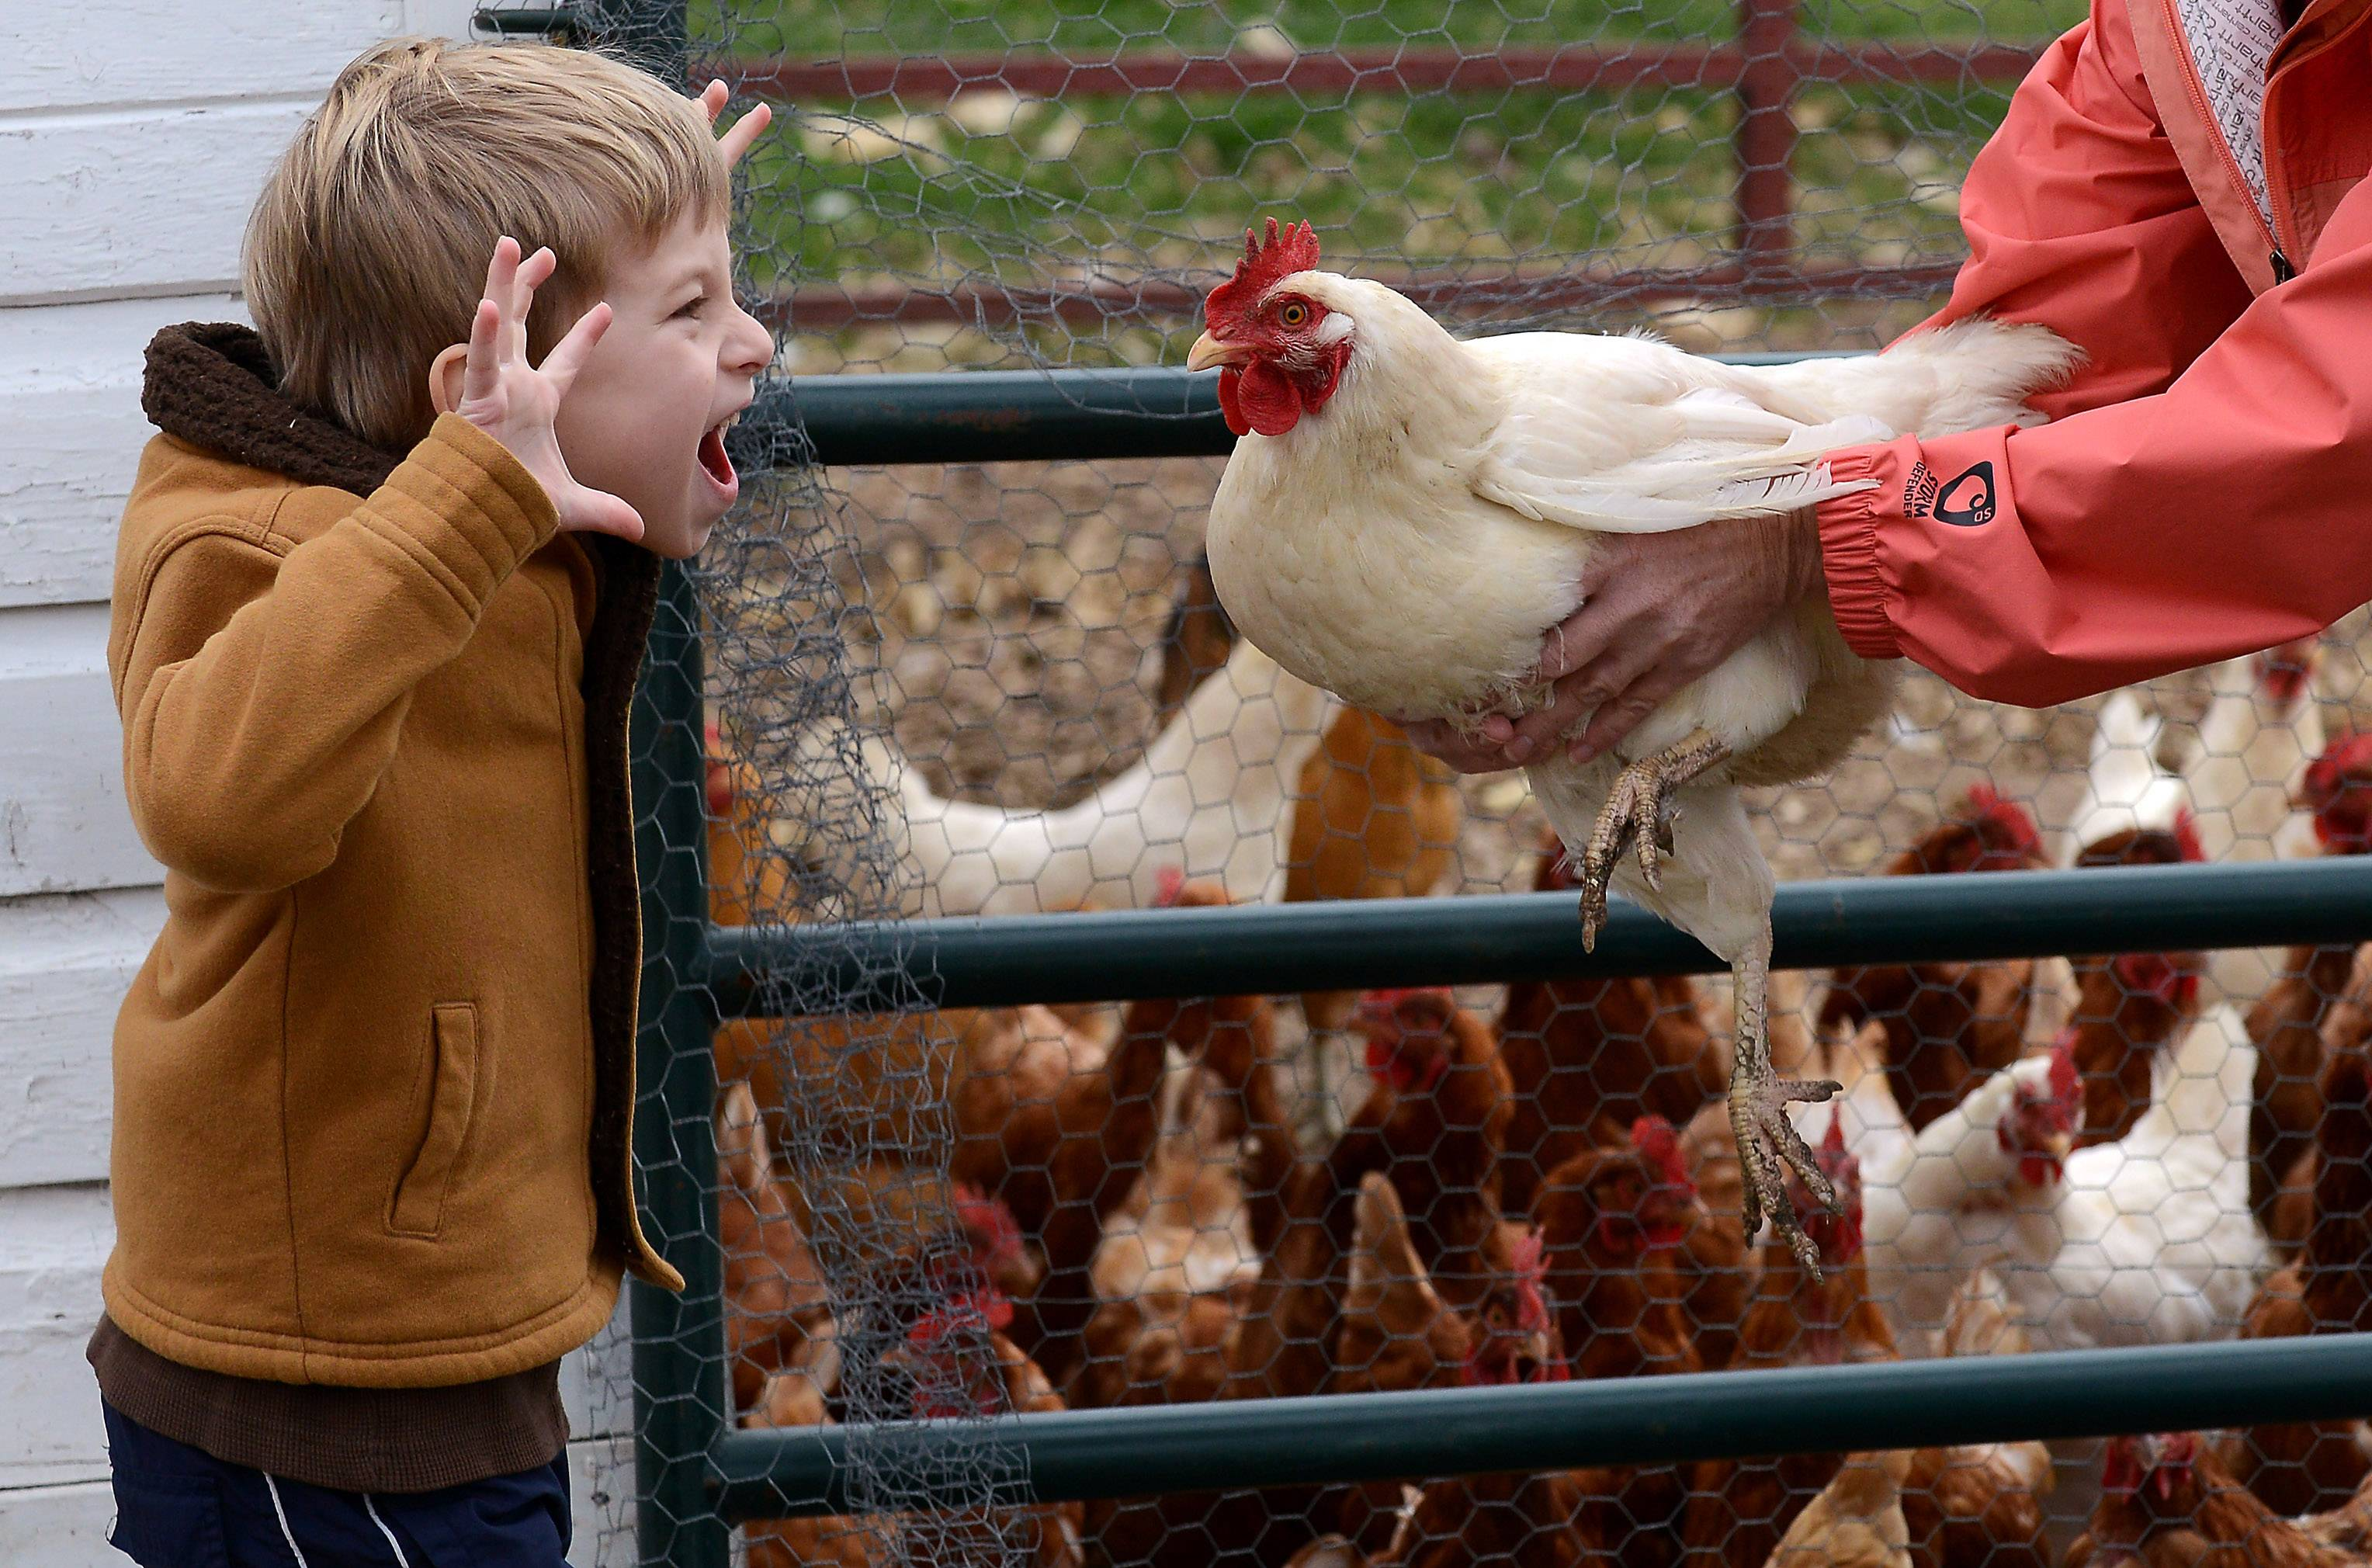 Some of my favorite pictures have nothing to do with the assignment that I was shooting at the time. In this case I was at Brookdale Road Farm in Woodstock, shooting a portrait of owners Gennifer and Scott Johnson when their 6-year-old son Solomon acquiesced to joining them in the photo. Gennifer was going to hand him a chicken to hold but the chicken wasn't being cooperative and flapped his wings in Solomon's face. Not to be outdone, Solomon put on his scary face to show the chicken who is boss. This photo was published in the Perspective column in the print edition of the Daily Herald. To comment, please contact Rick West, rwest@dailyherald.com. Follow me on Twitter @dhrickwest or Instagram @rickwest. You like the Facebook? www.facebook.com/rick.west.7393.